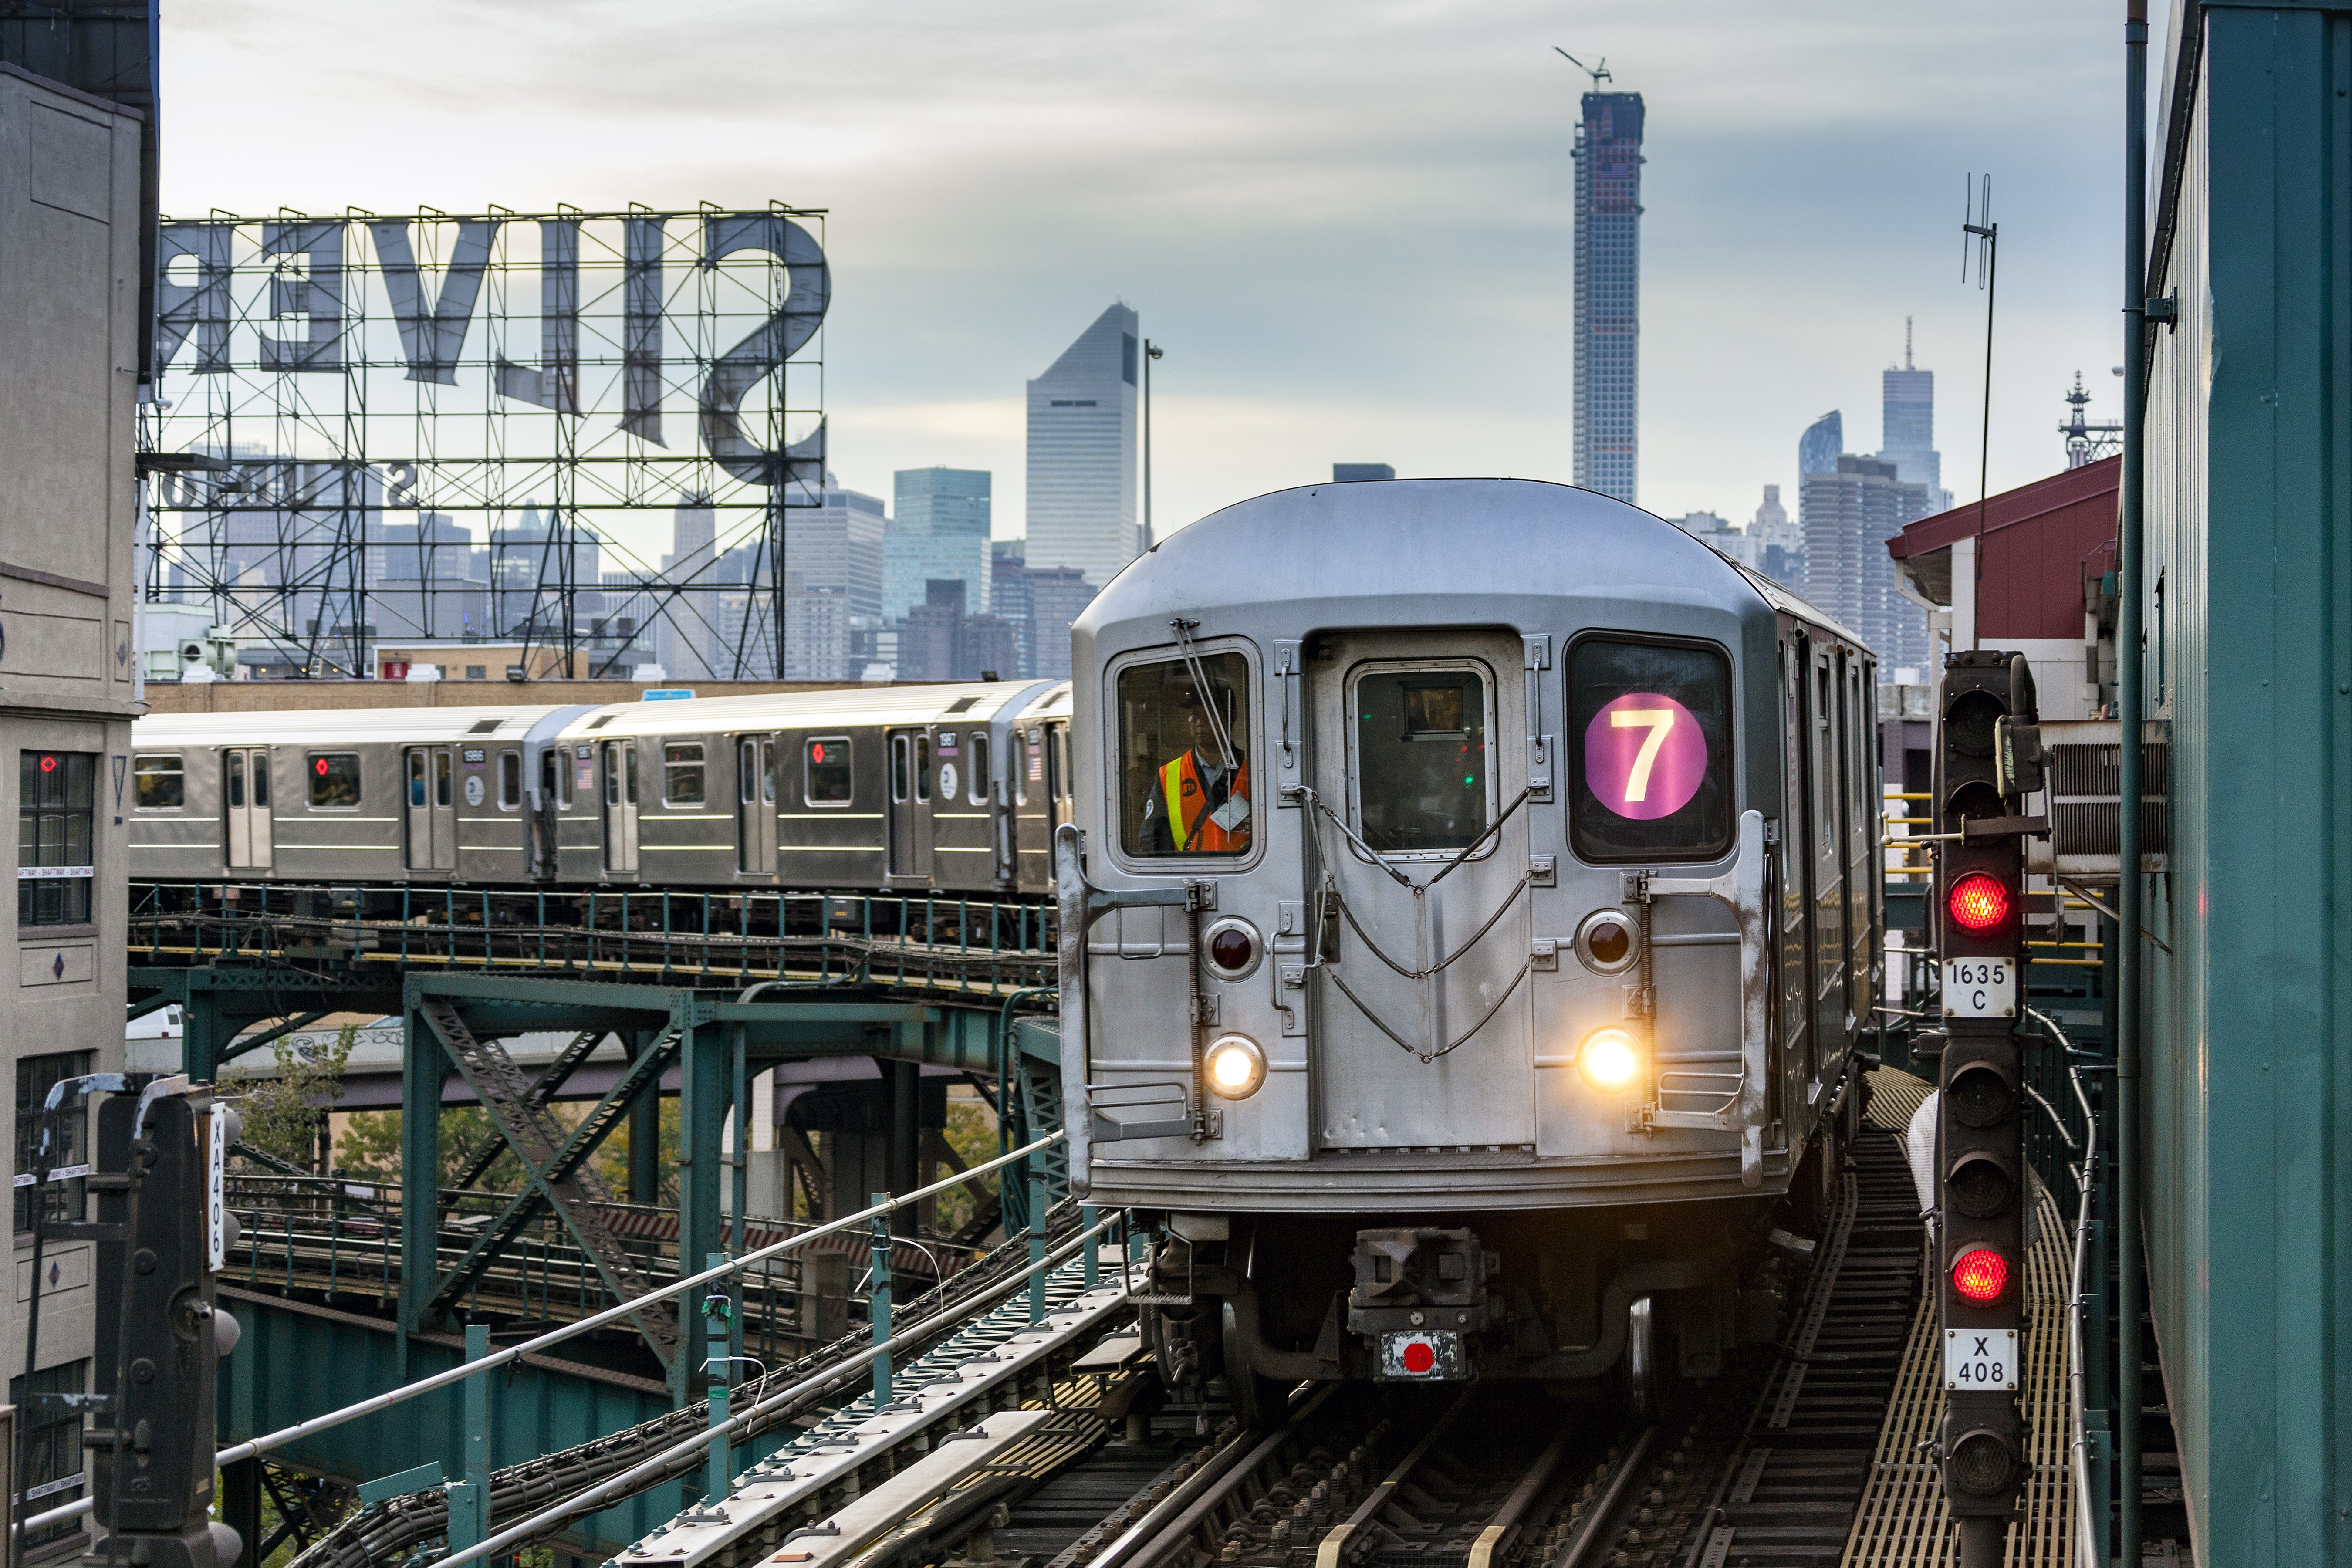 Mta To Increase Weekend Service On 7 Train Starting June